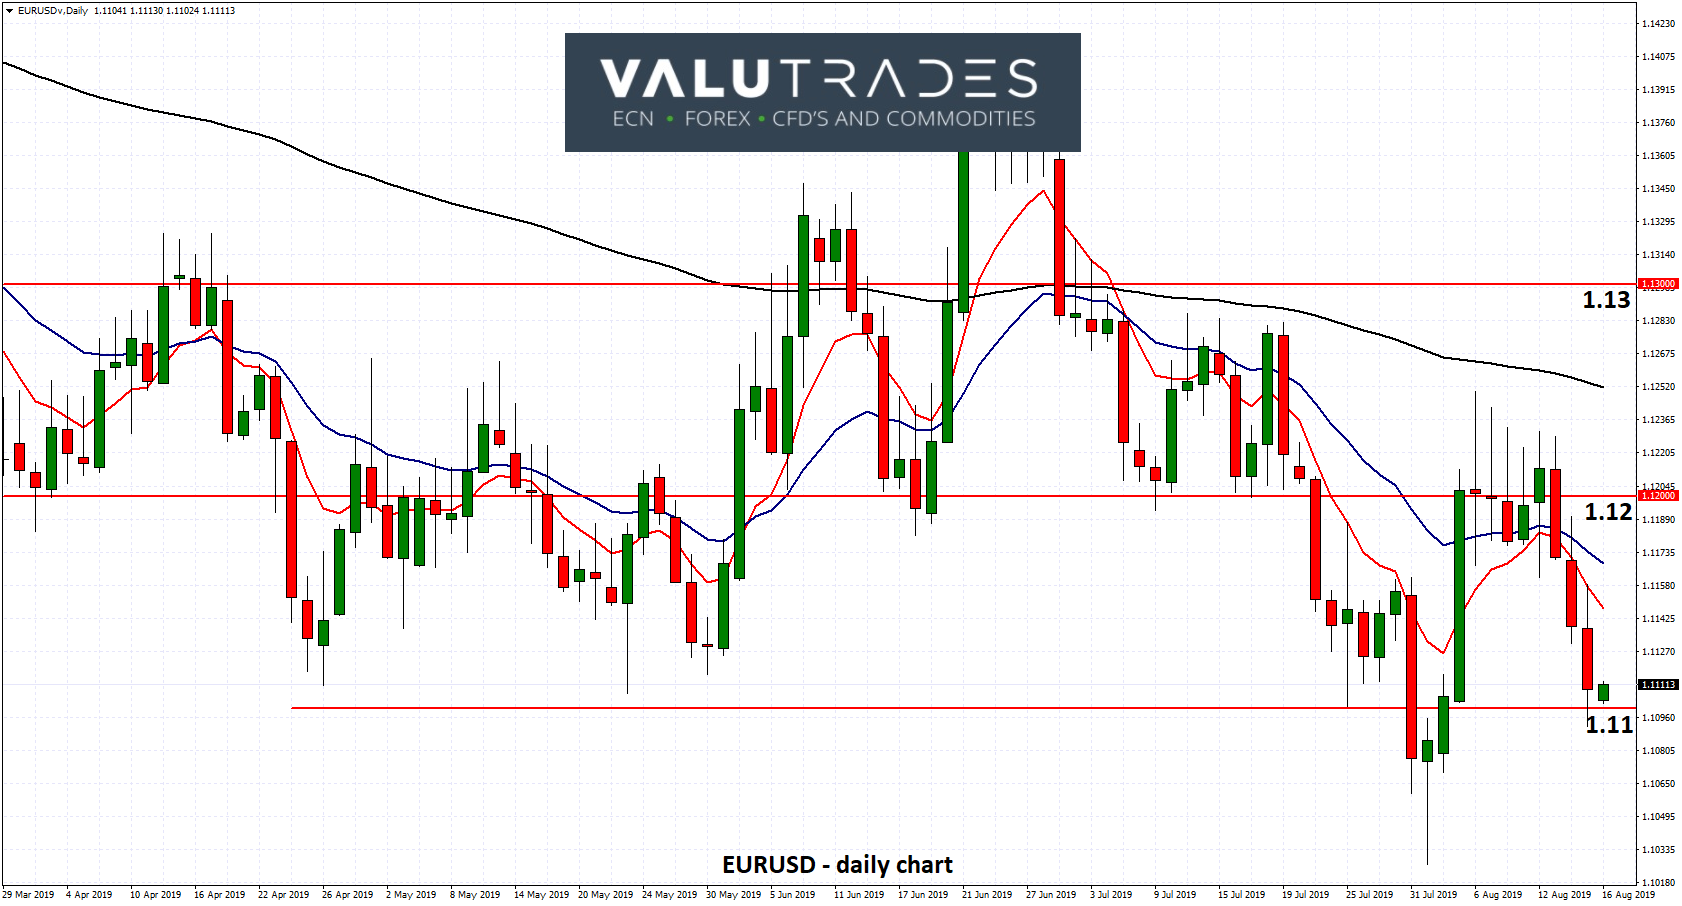 EURUSD - Looking for Support at 1.11 as ECB Poised to Act